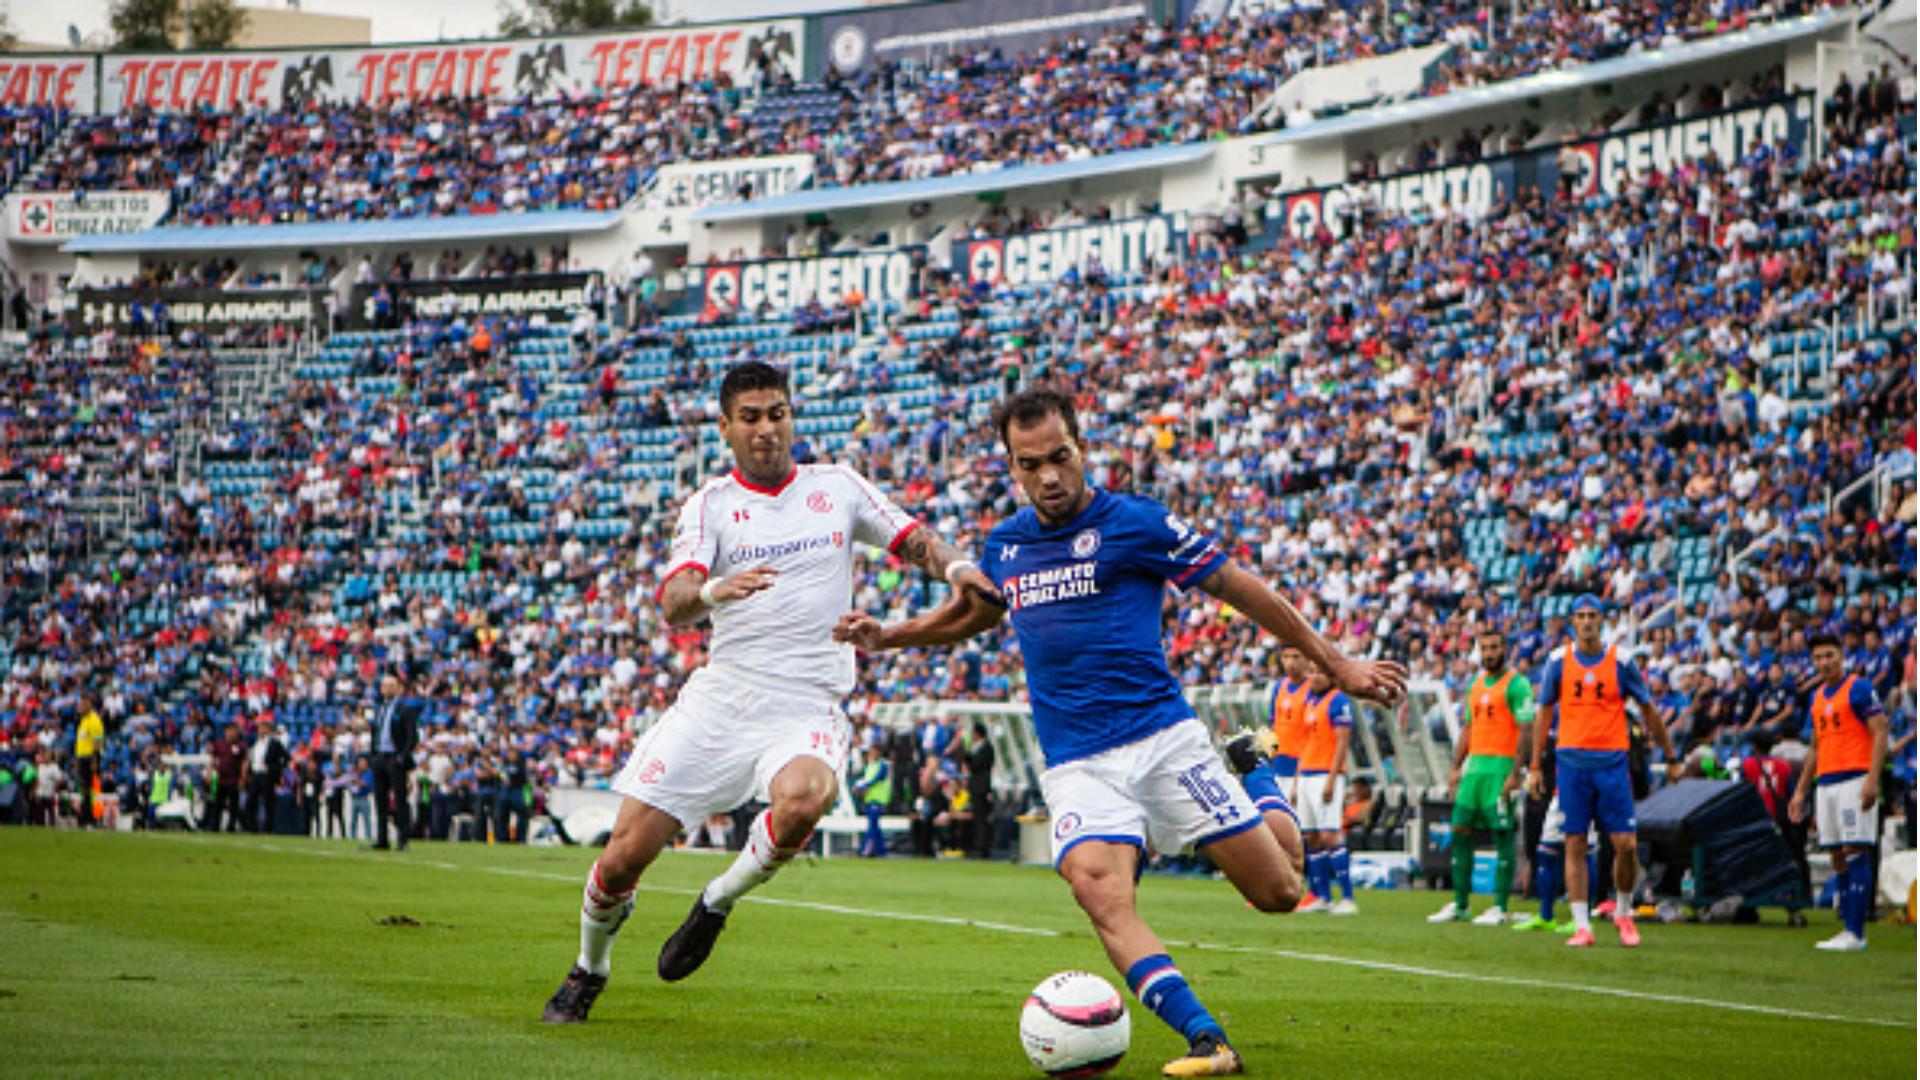 Atlas no ve imposible vencer al Cruz Azul de visita